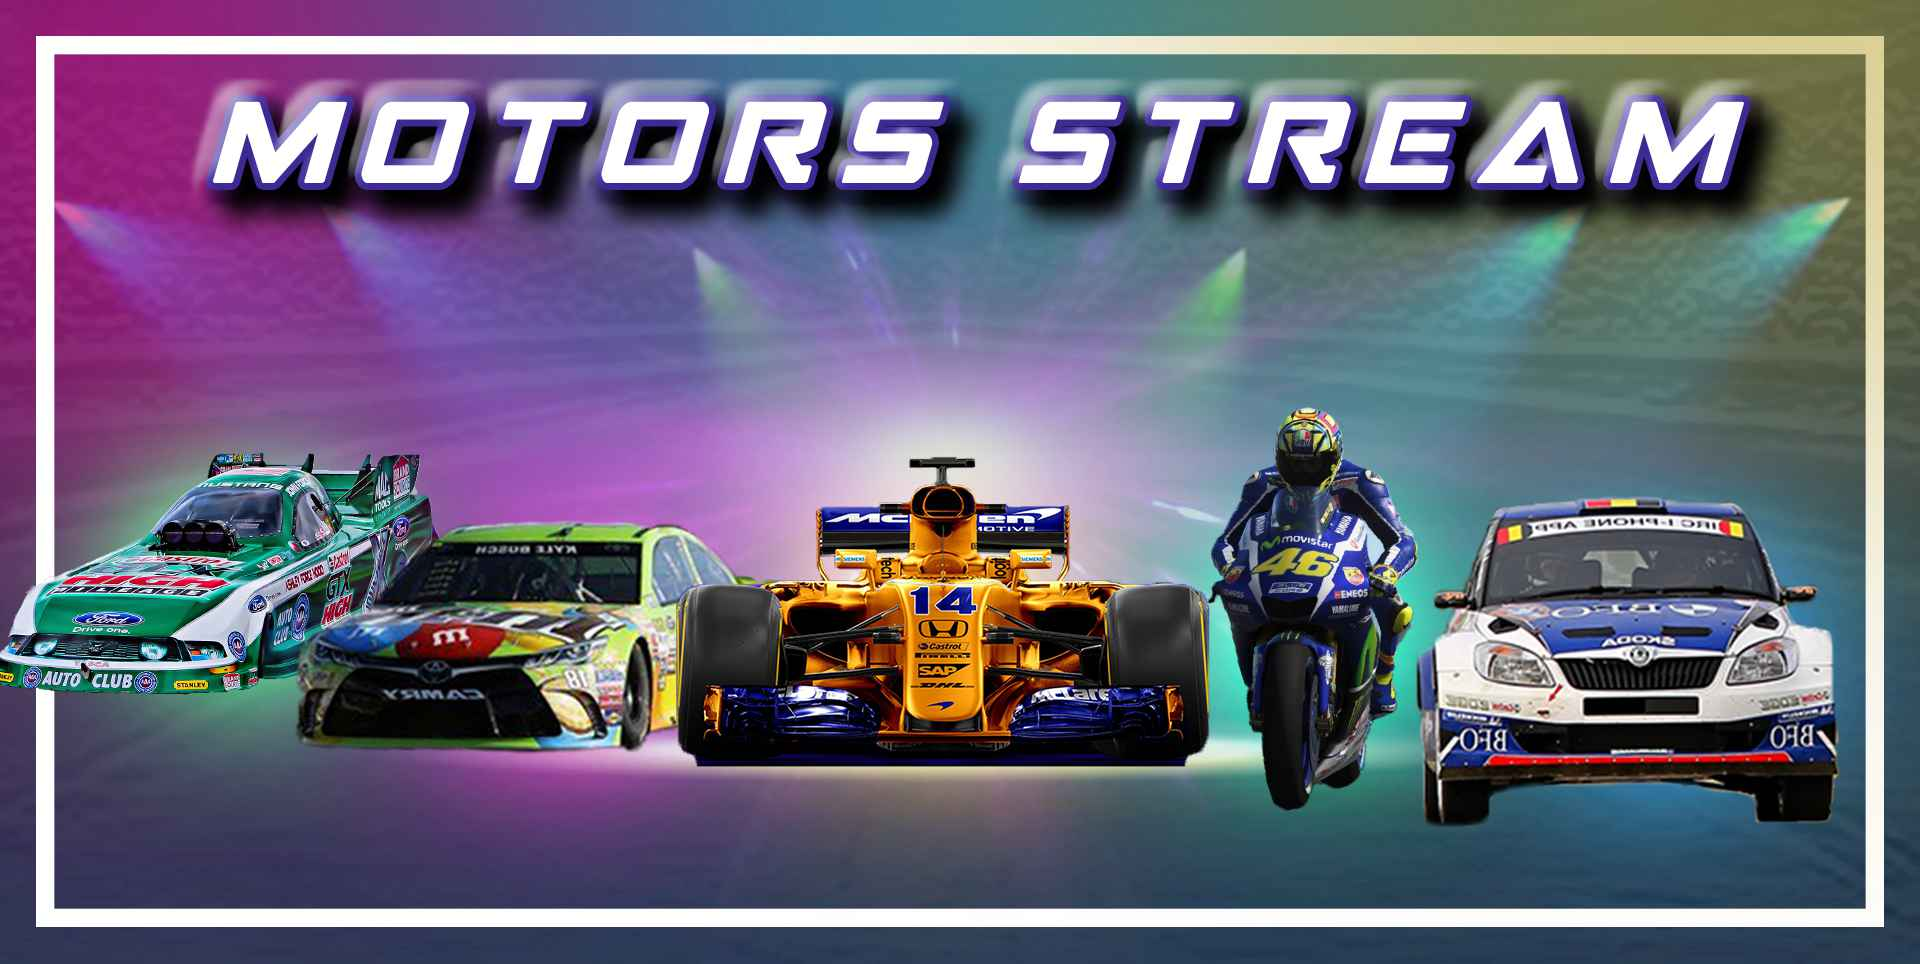 Live Austrian motorcycle Grand Prix Streaming